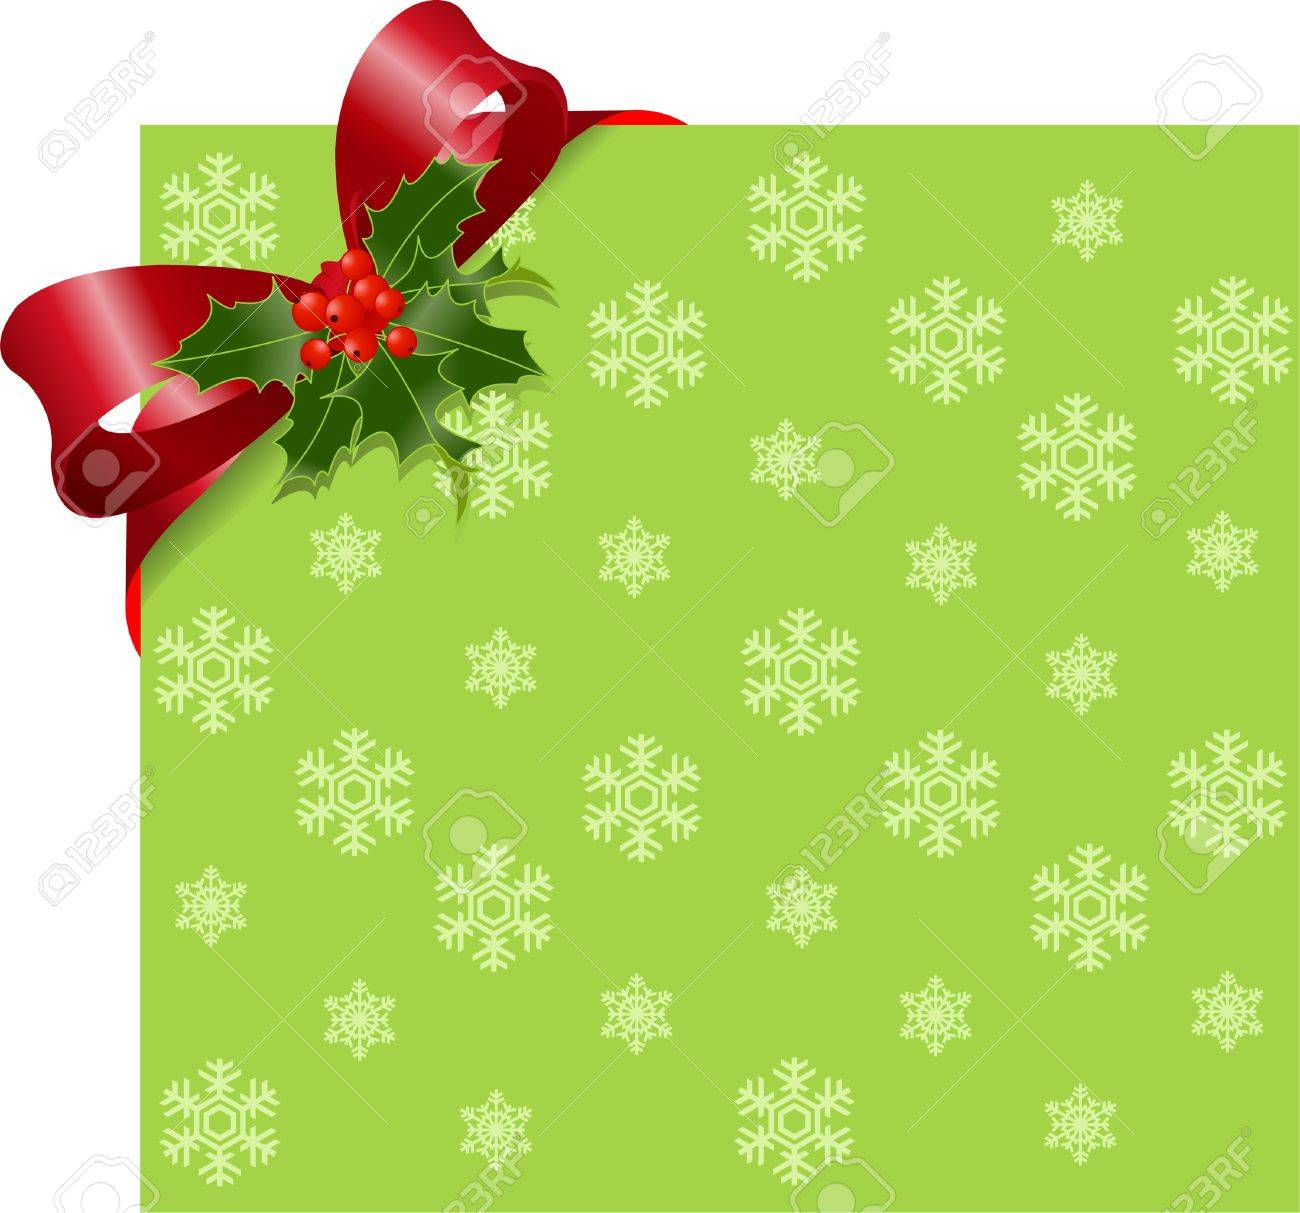 Christmas Green page corner with red ribbon and bow. Place for copy/text. Stock Vector - 8377195